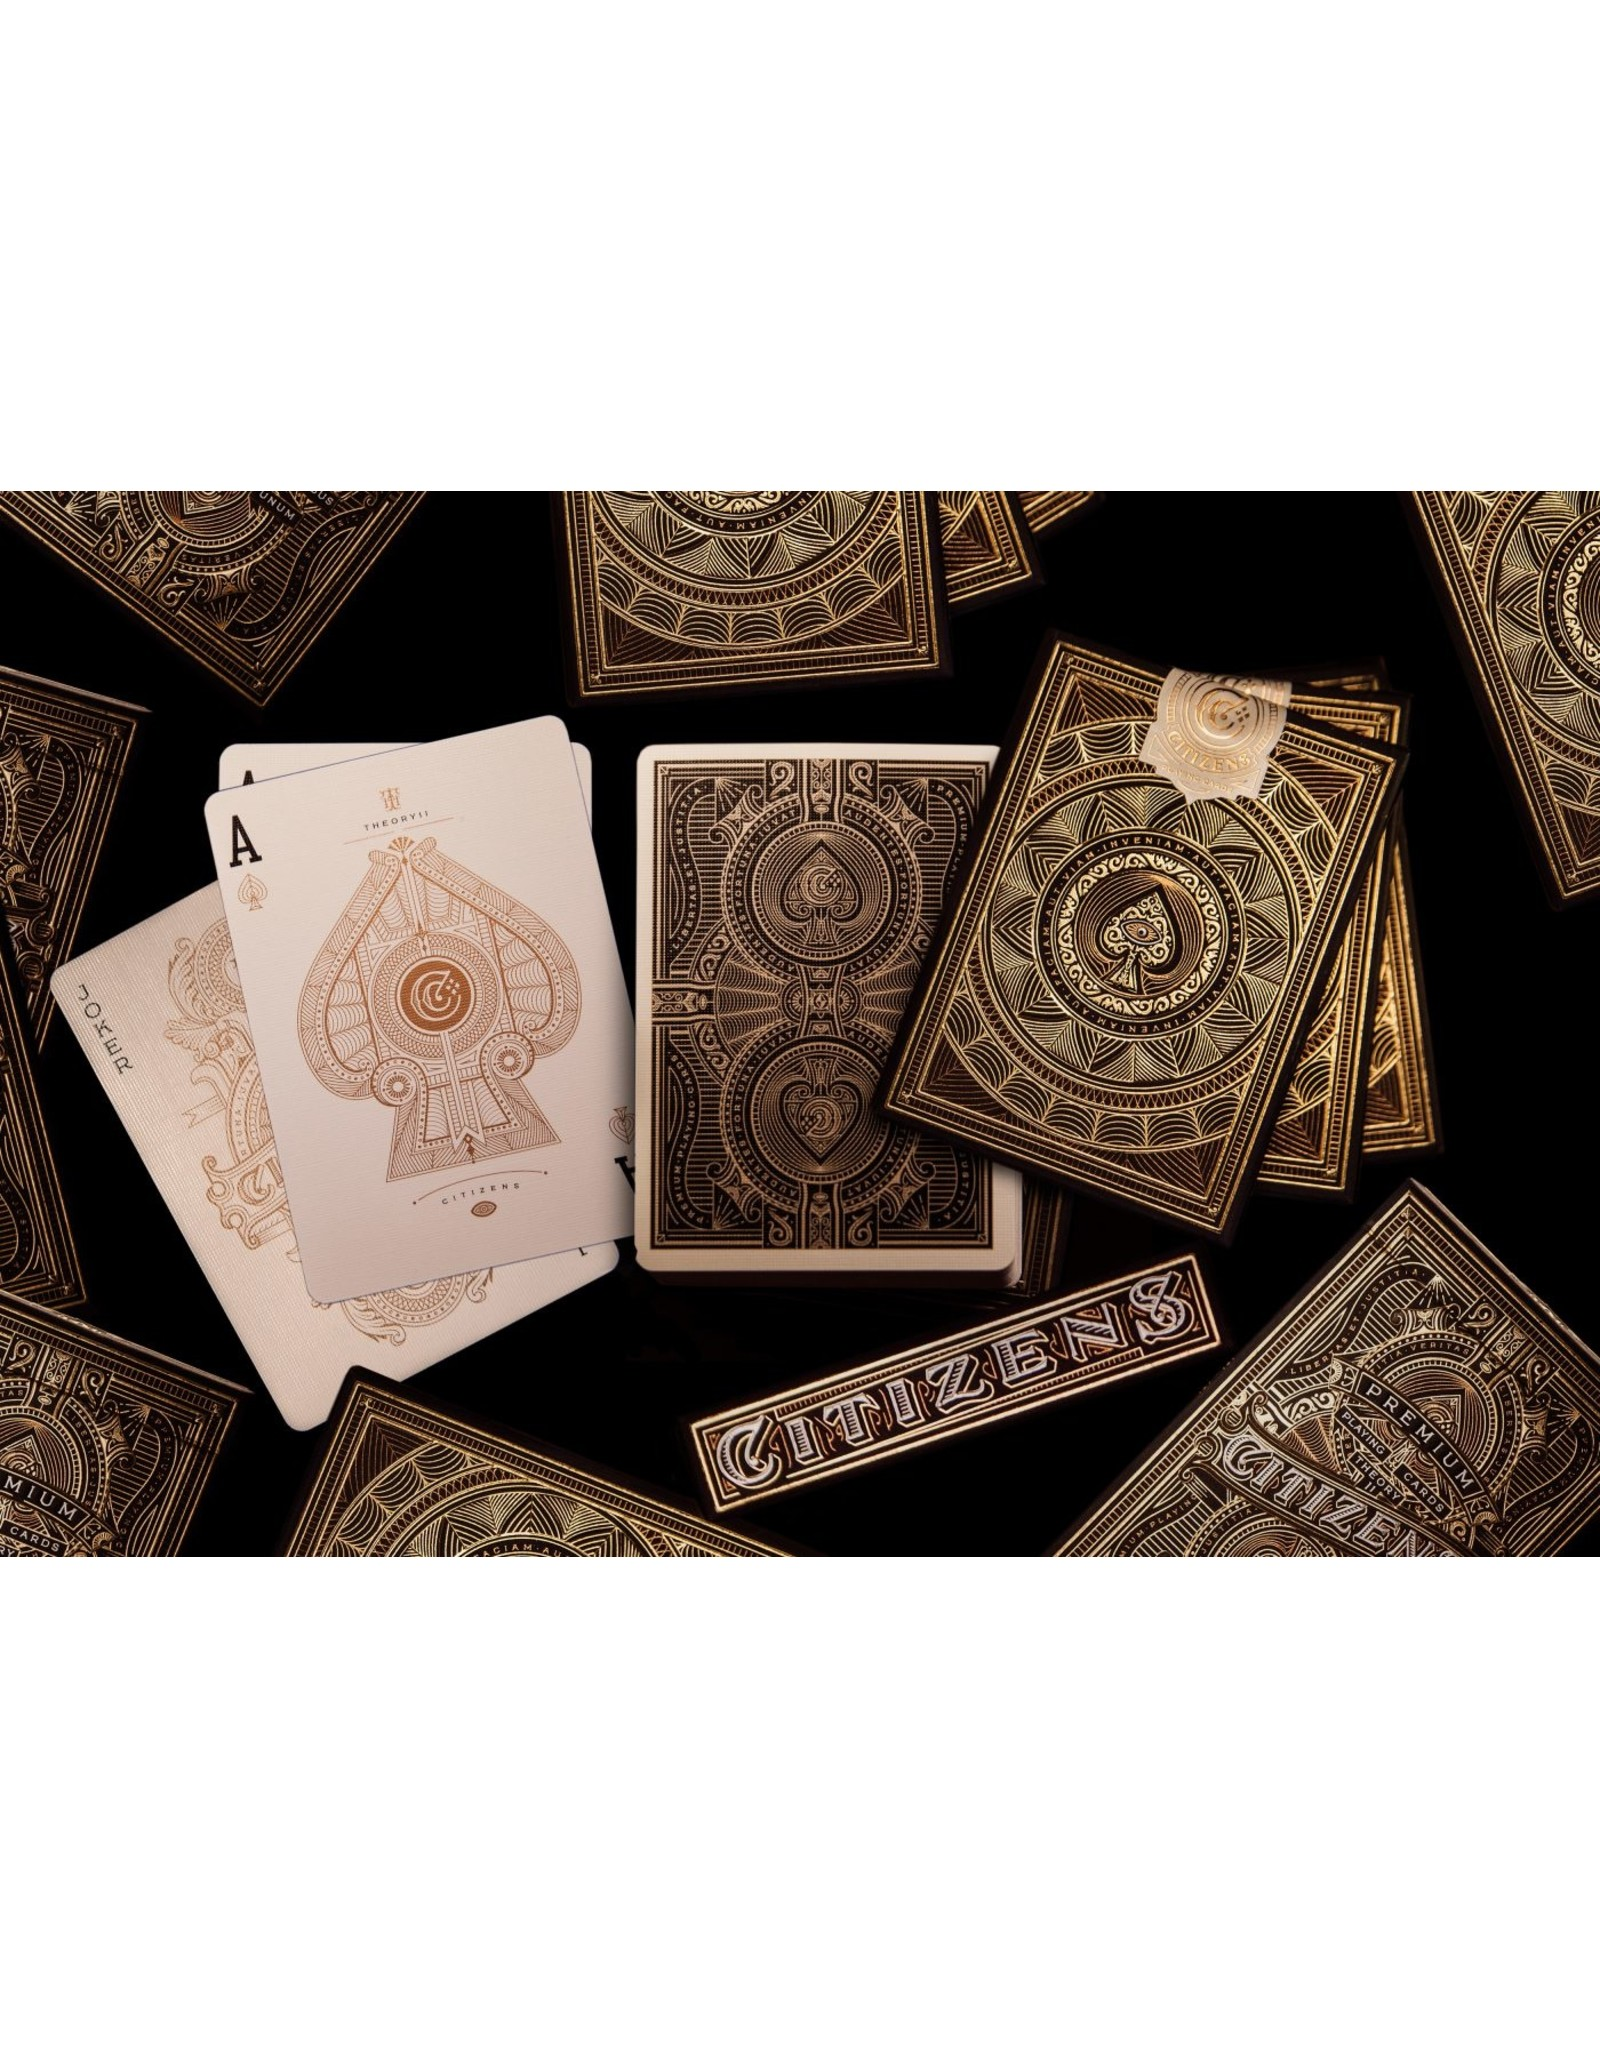 US Playing Card Co. Citizens